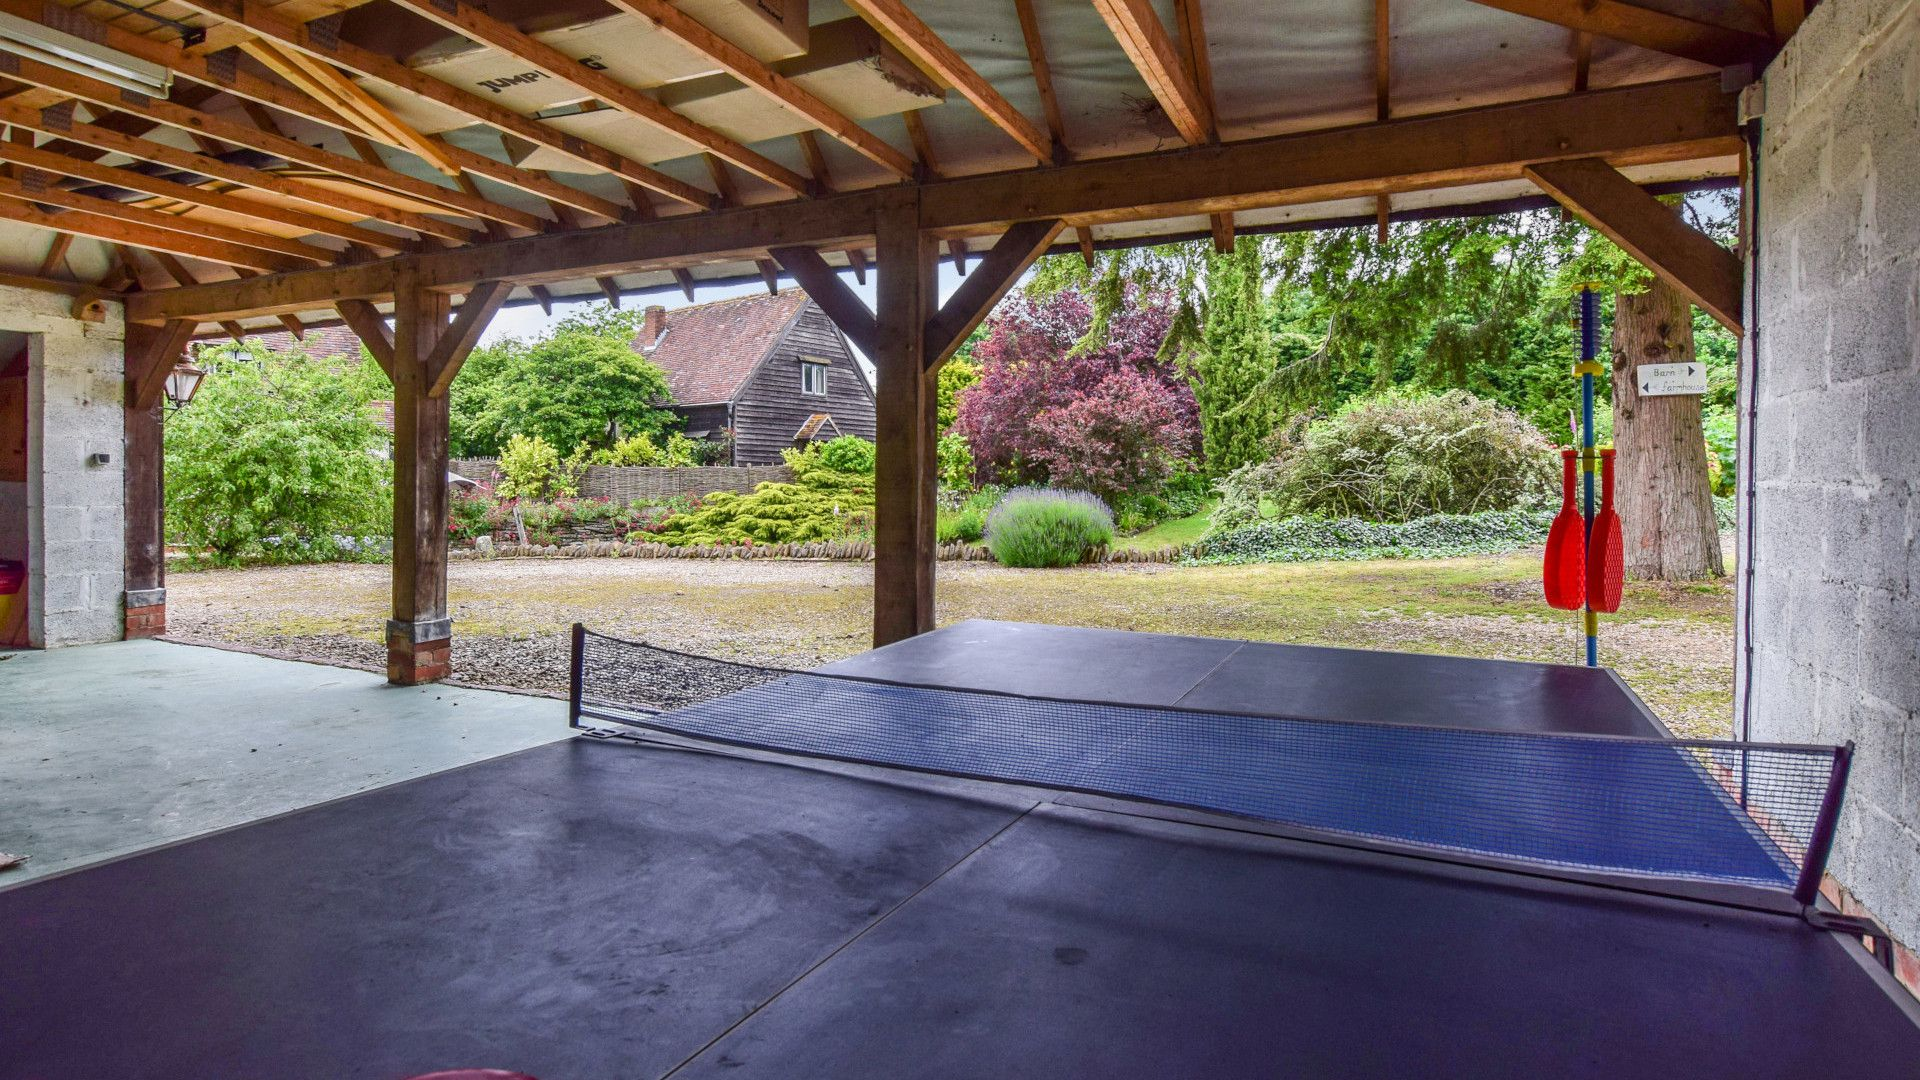 Carport with ping pong table, Cyder Press House, Bolthole Retreats